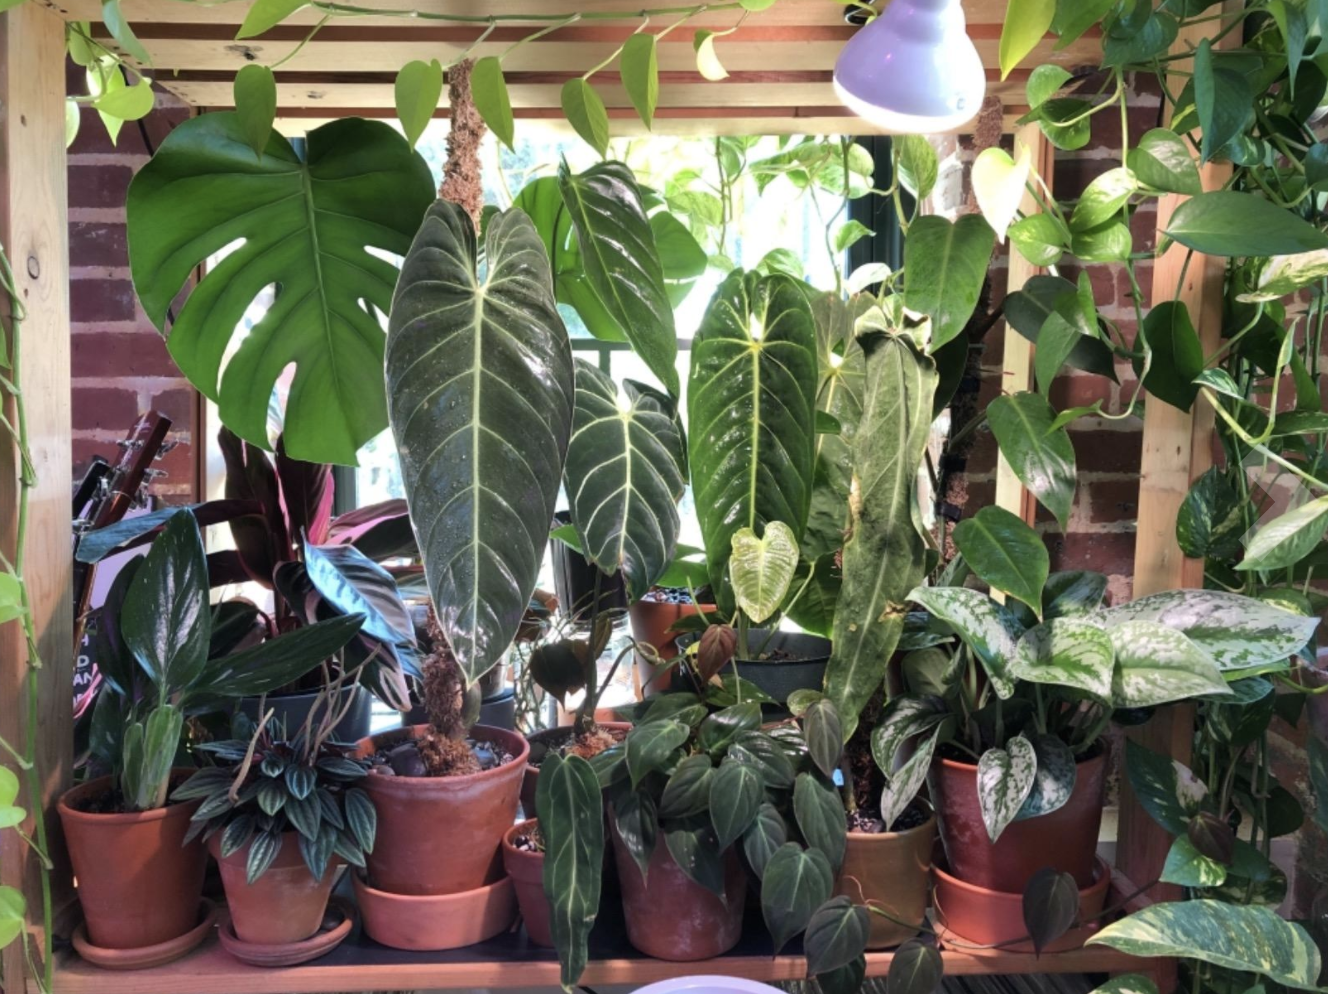 A reviewer's plants under the grow lights